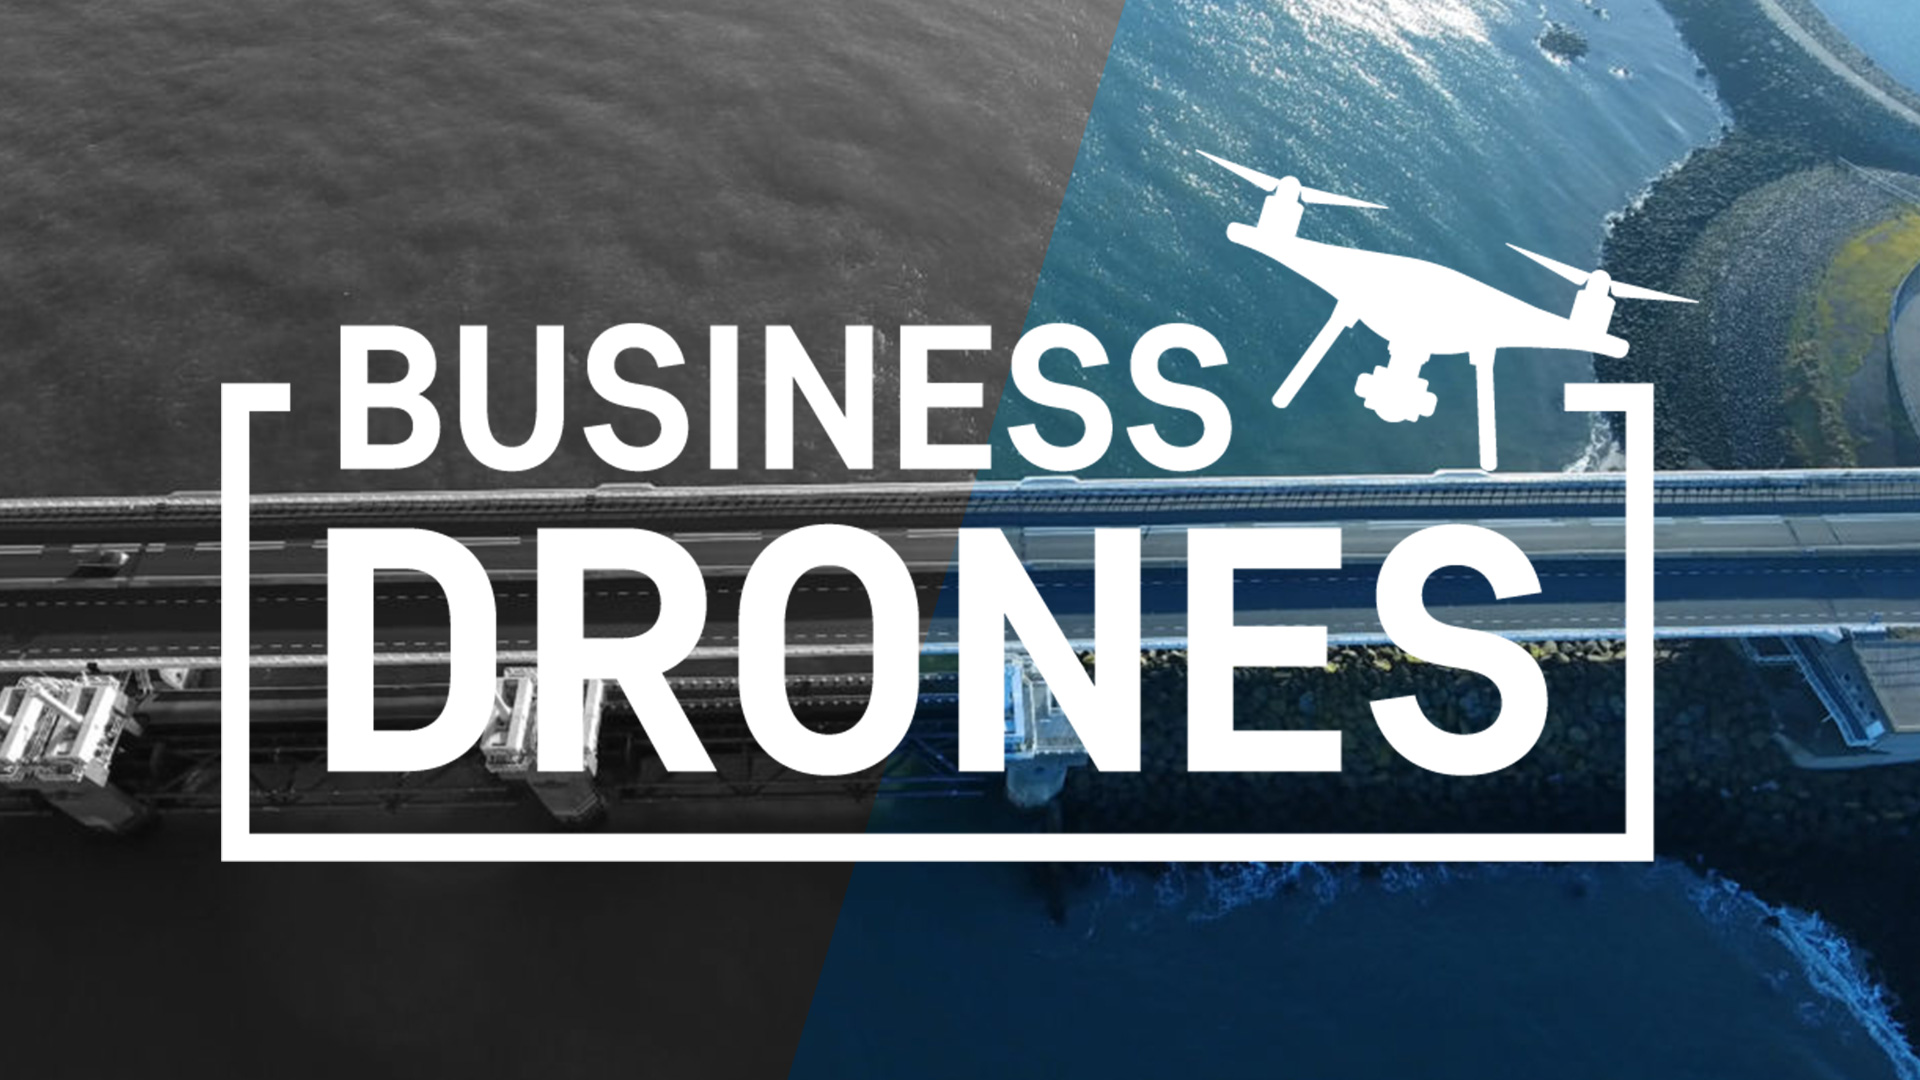 business-drones-over-ons